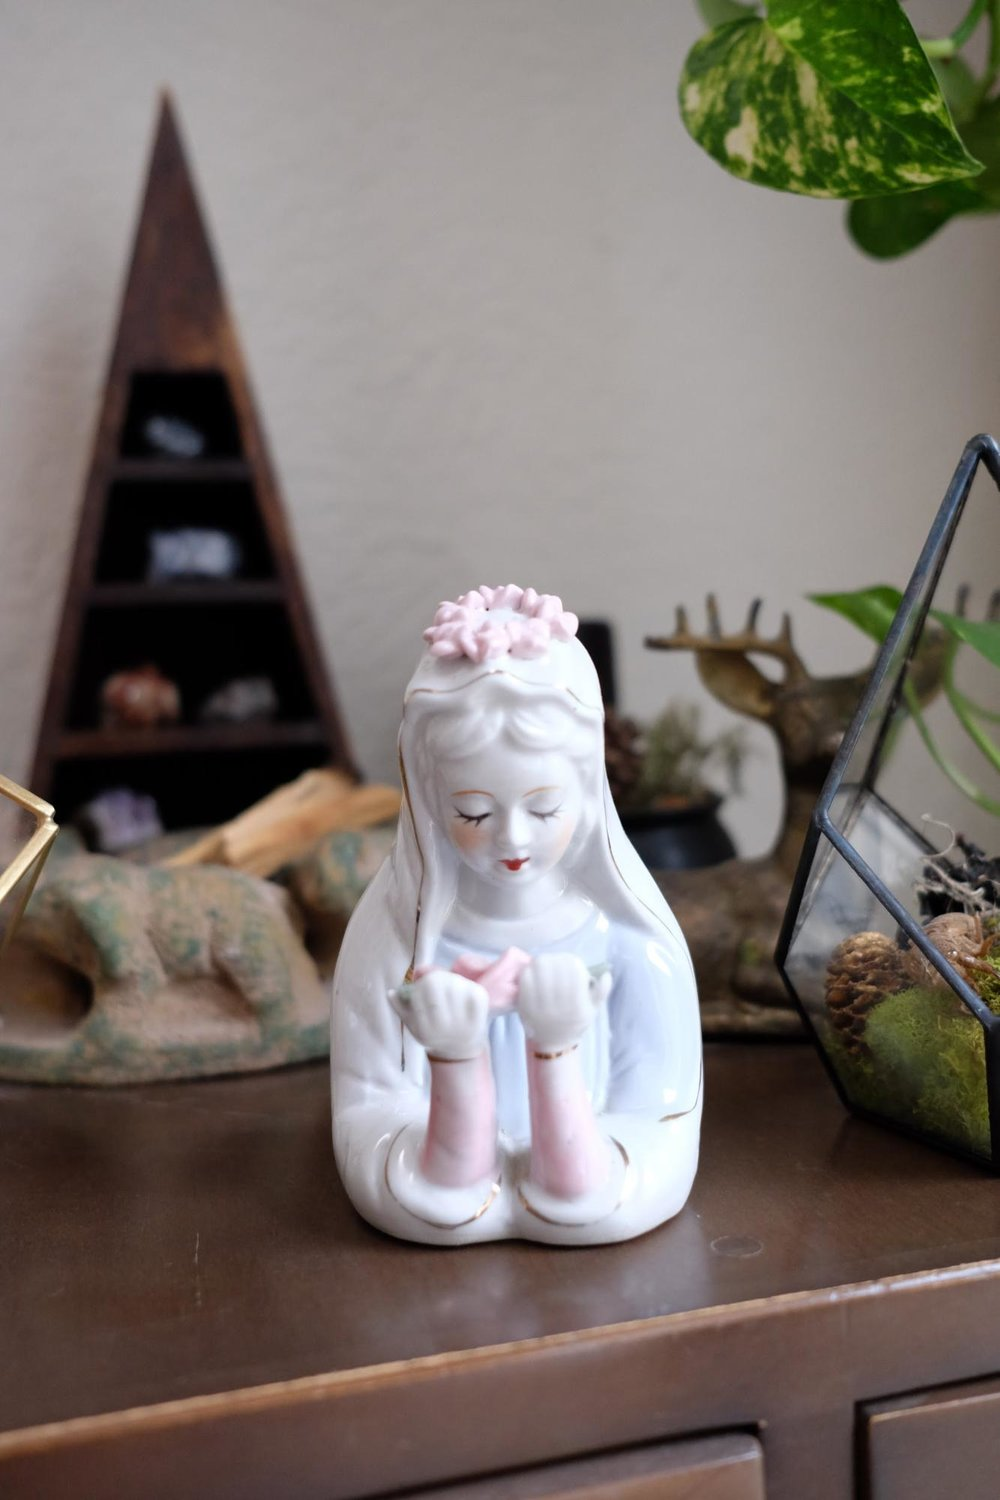 Virgin Mary figurine.